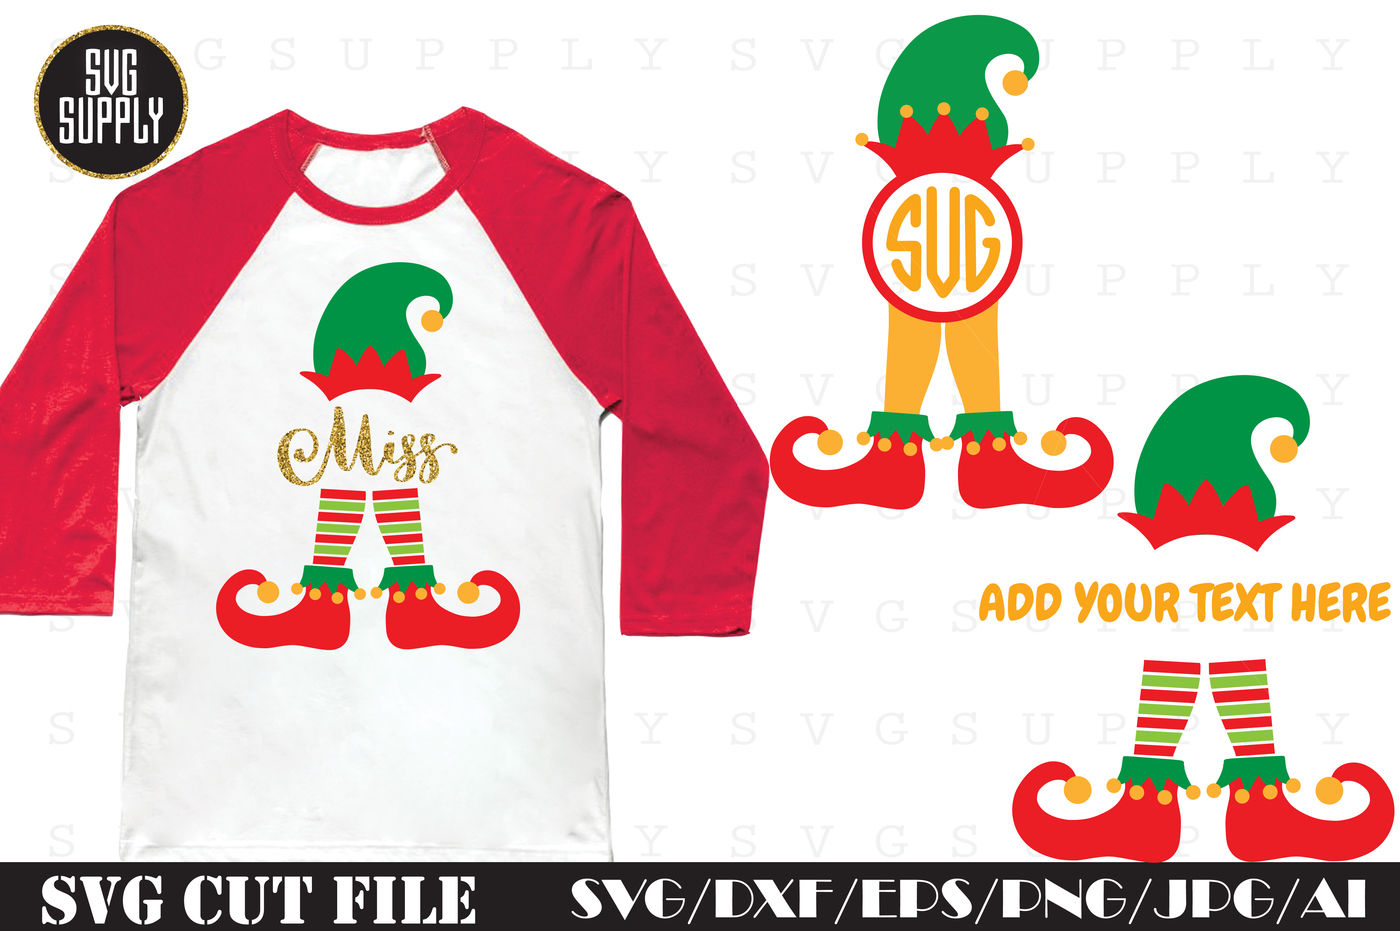 Elf Monogram Svg Cut File By Svgsupply Thehungryjpeg Com